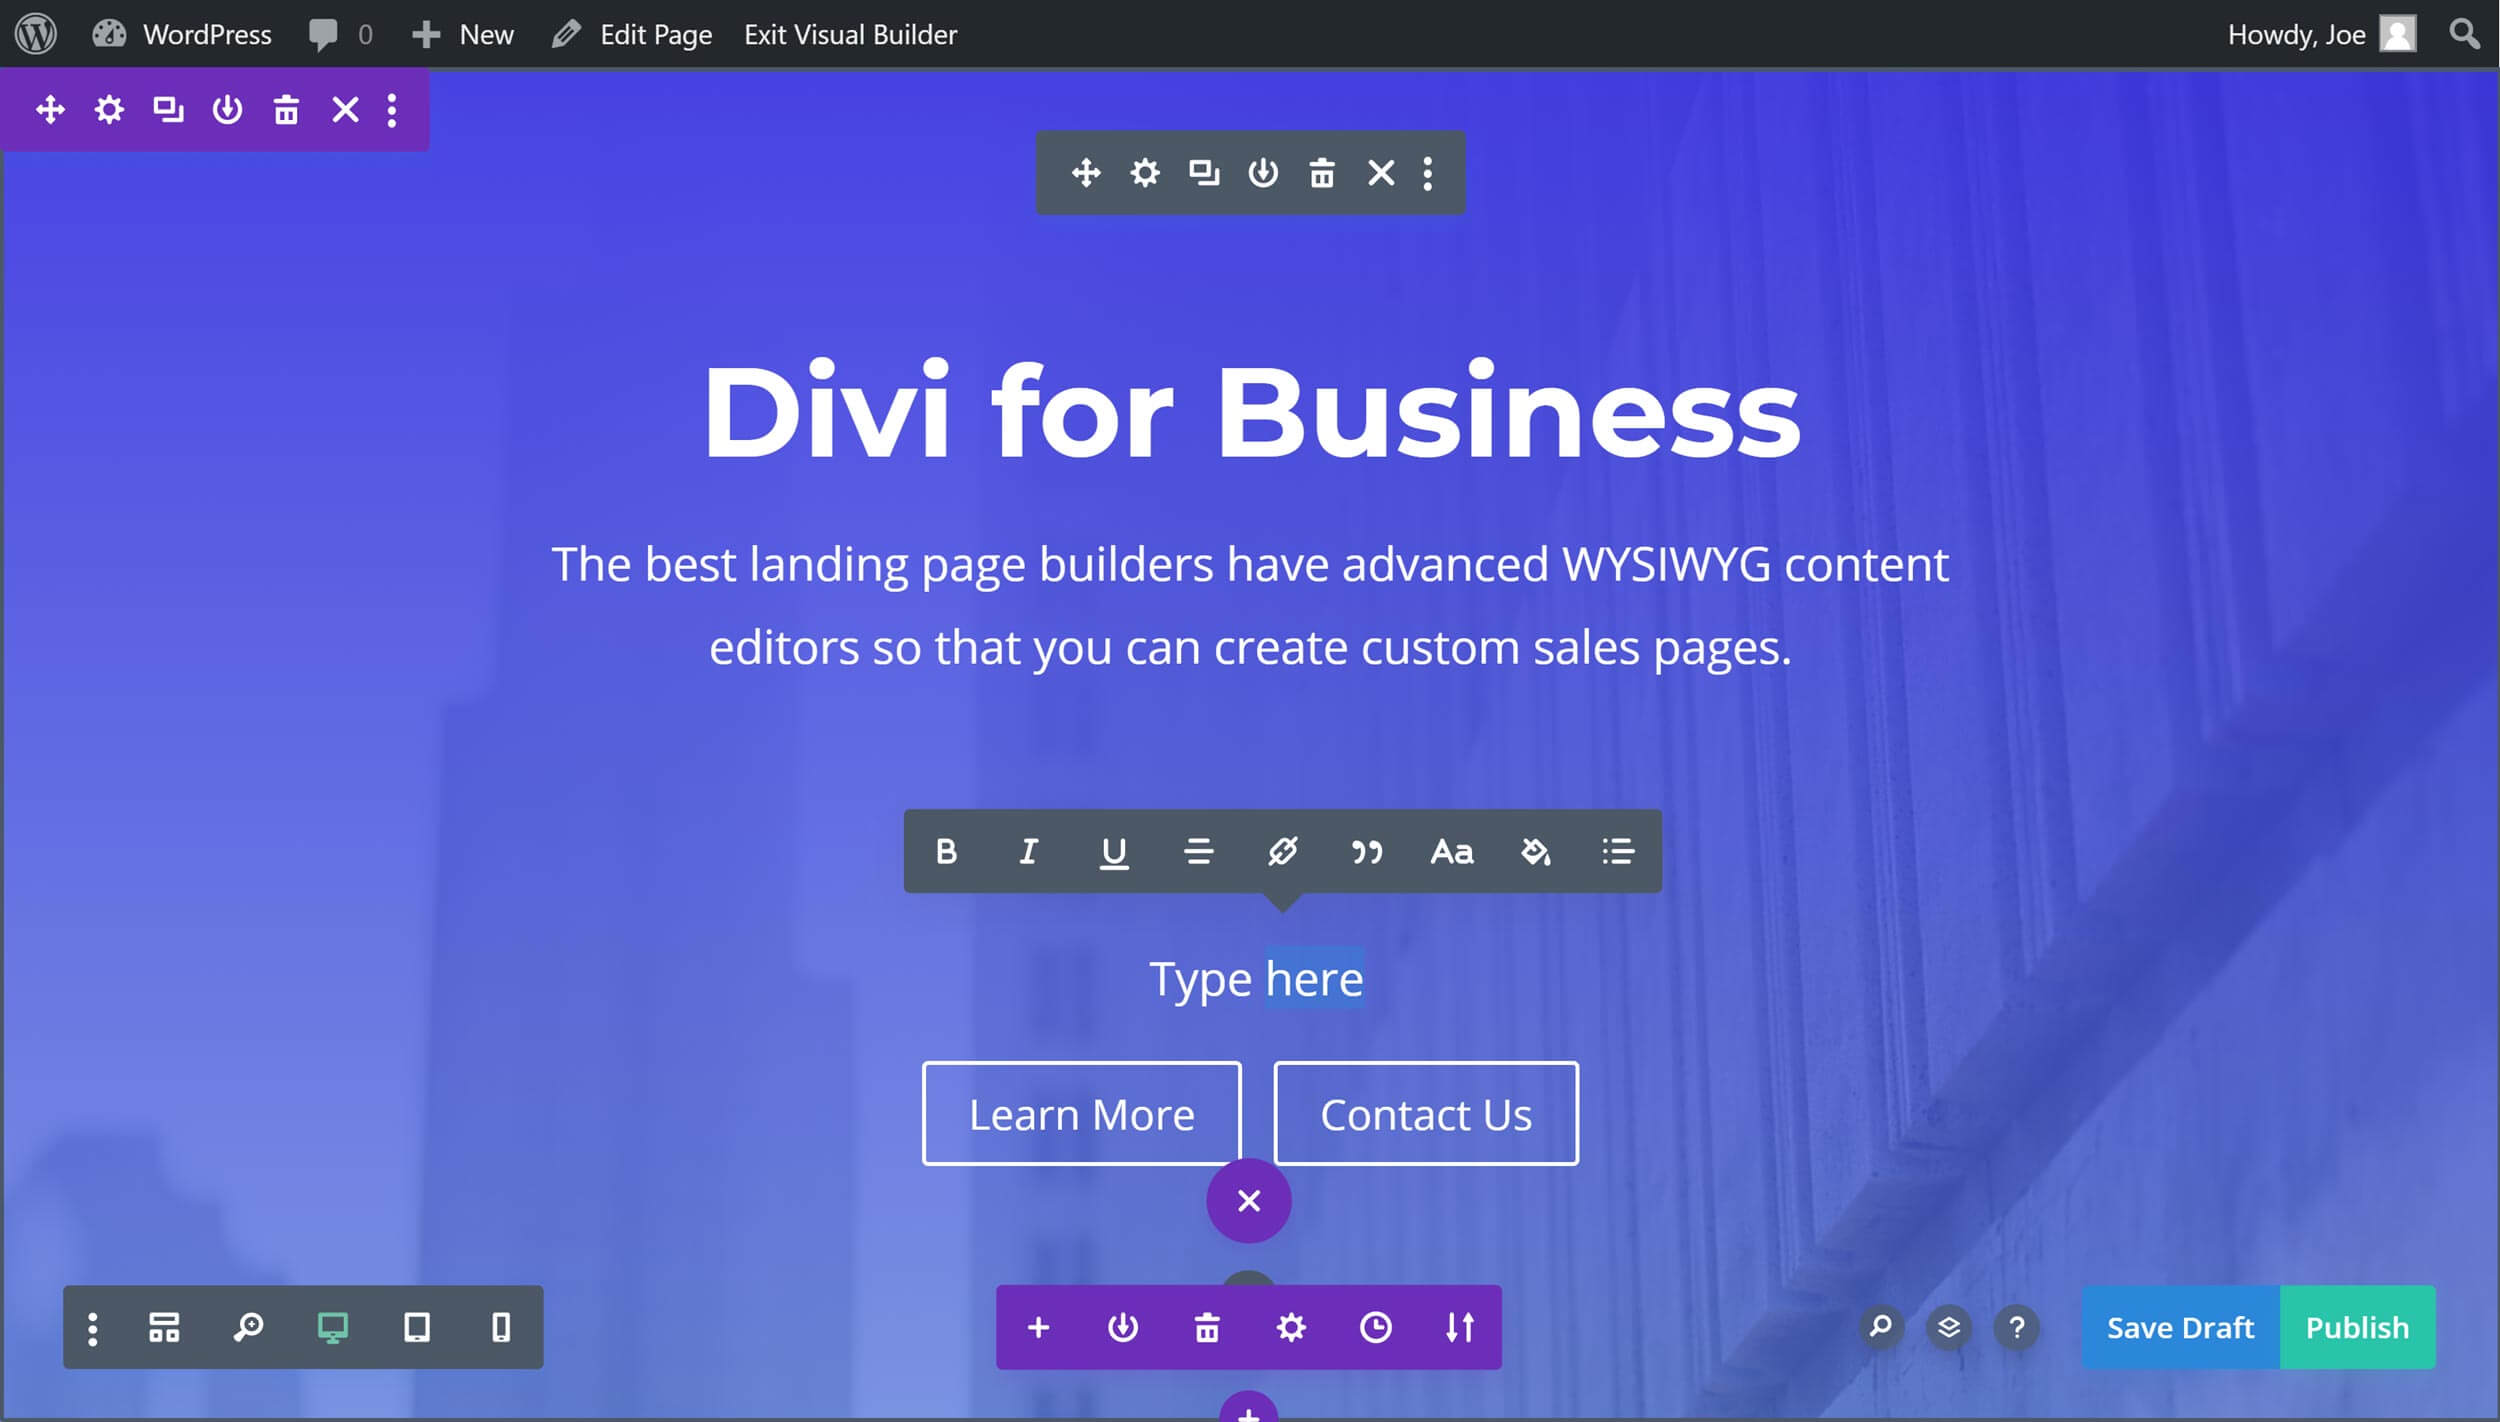 Divi Landing Page Builder Interface